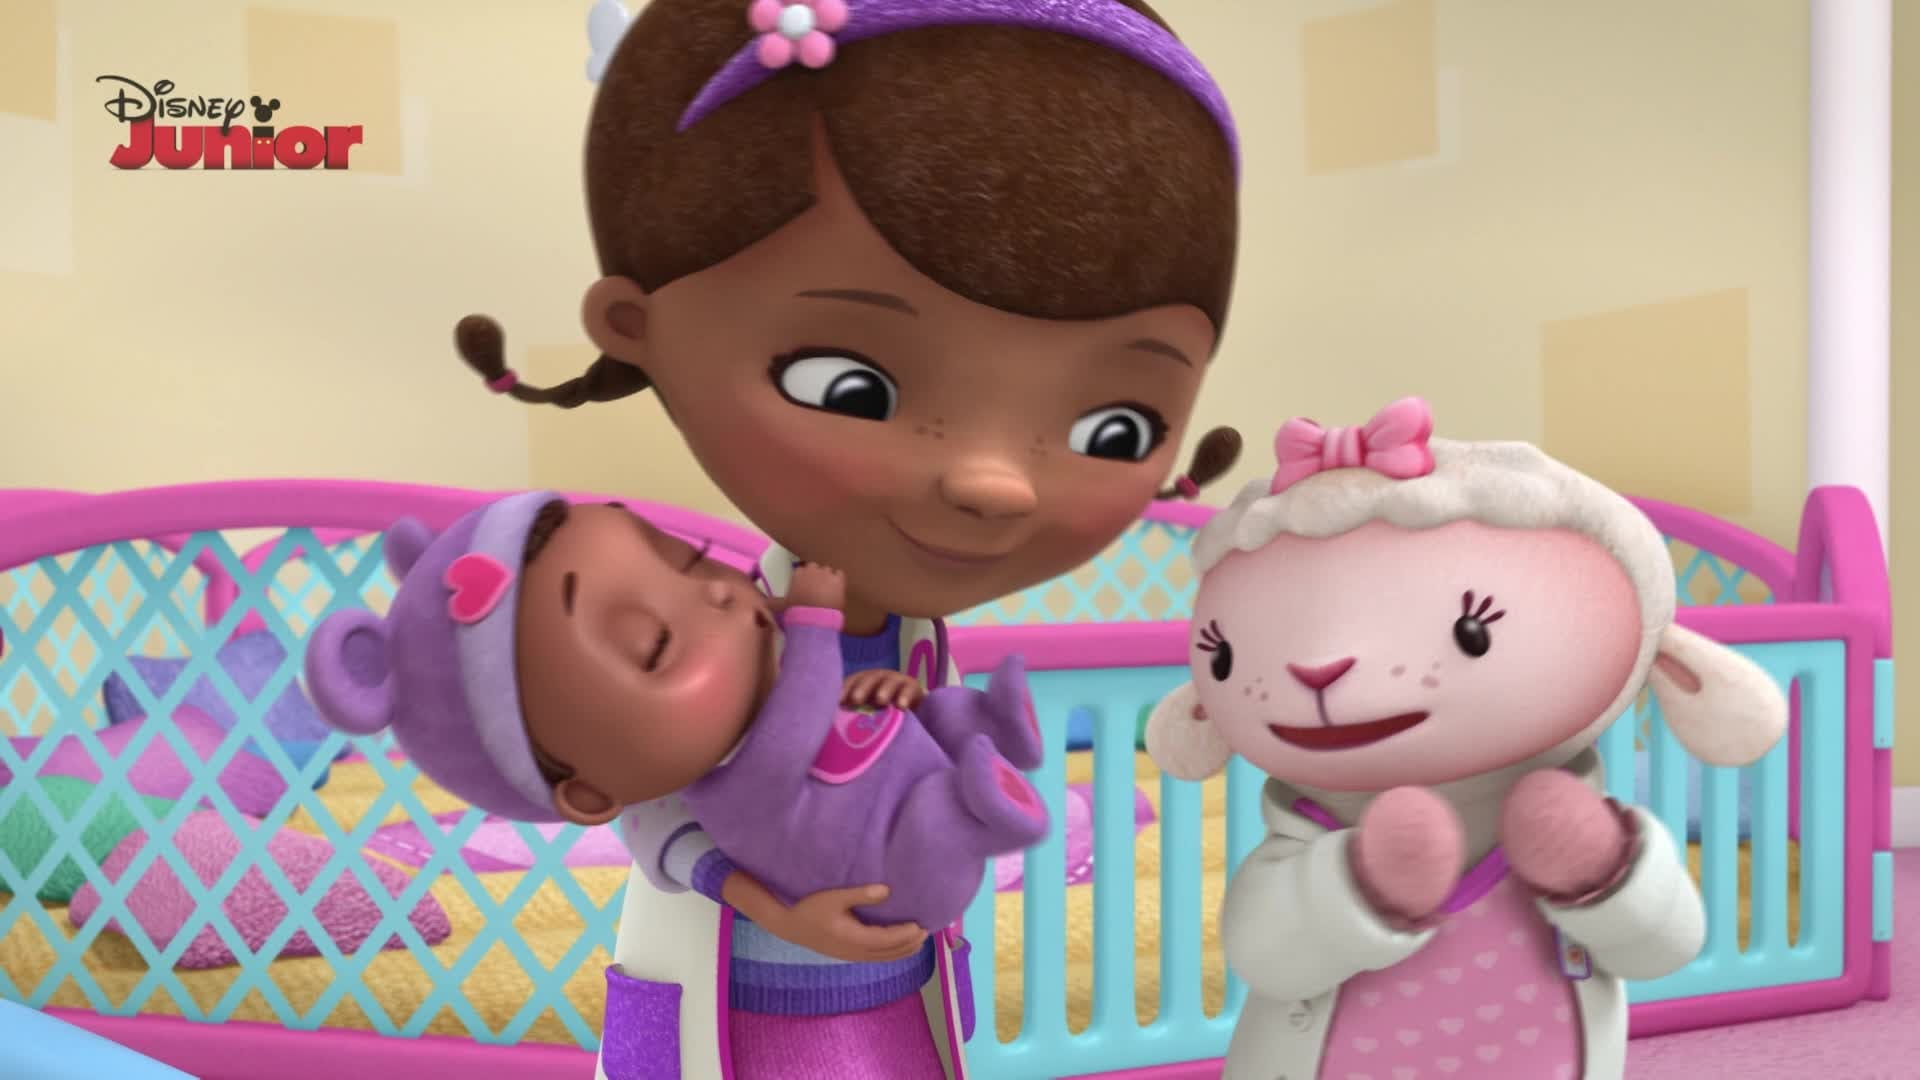 doc mcstuffins disney junior